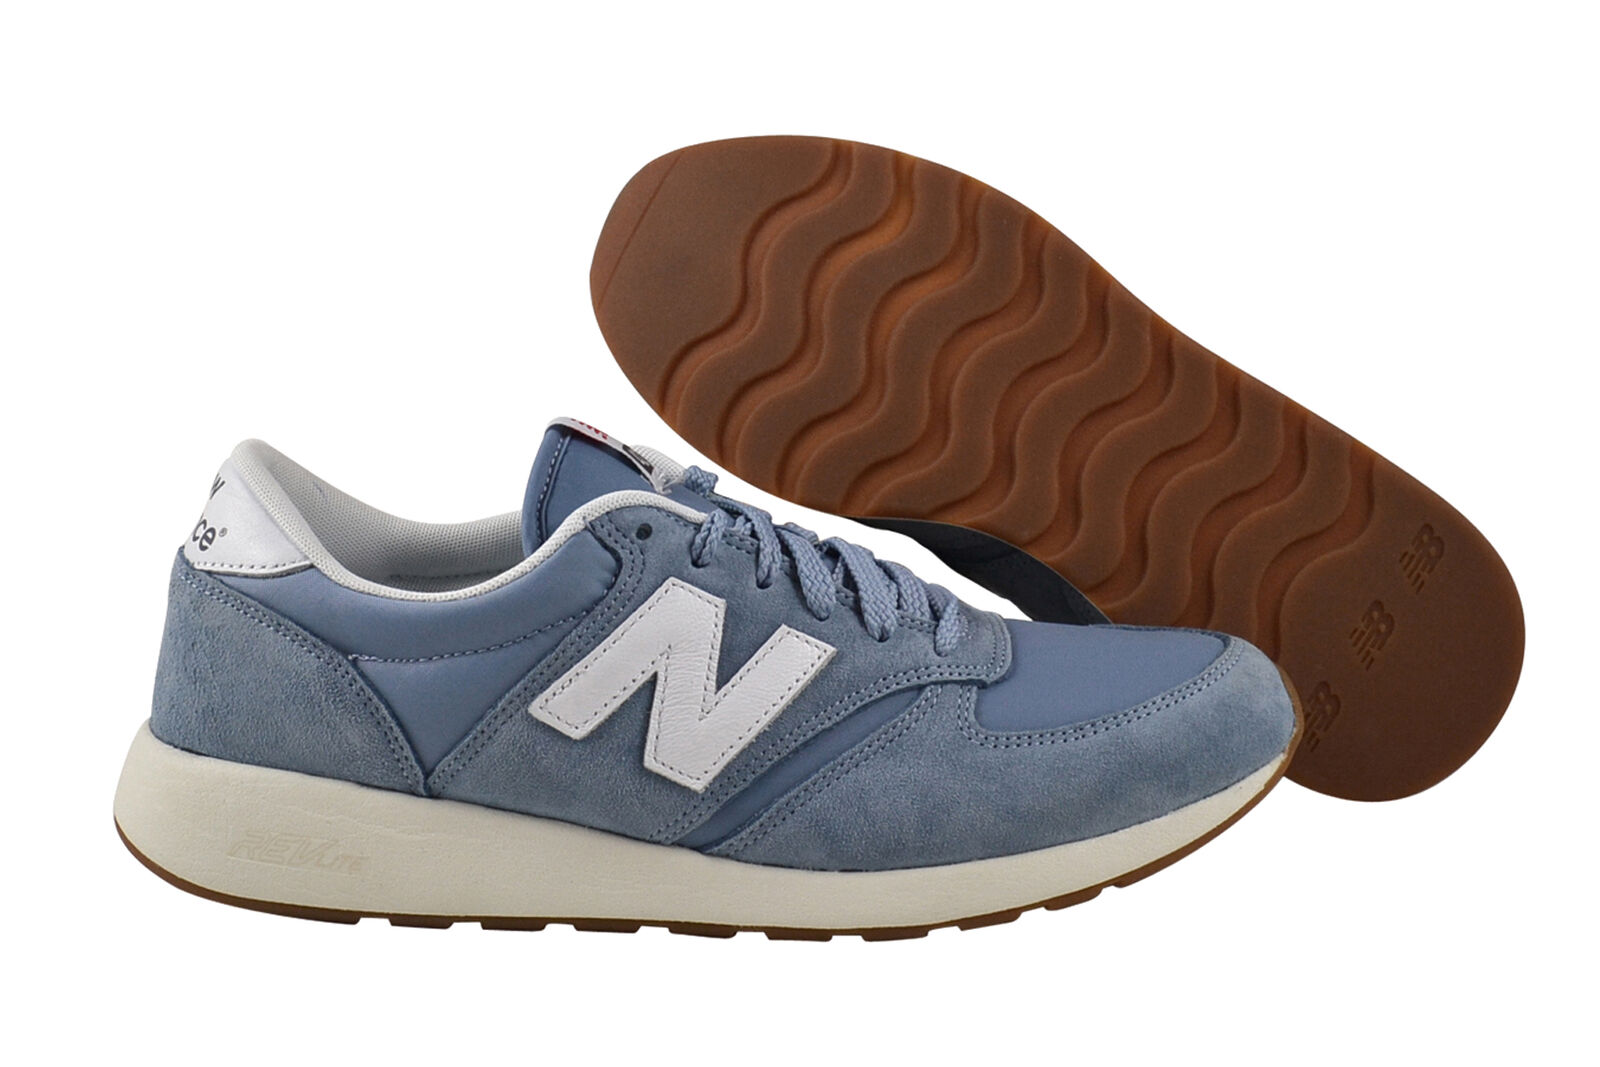 New Balance MRL420 SP light blue Schuhe Sneaker blau